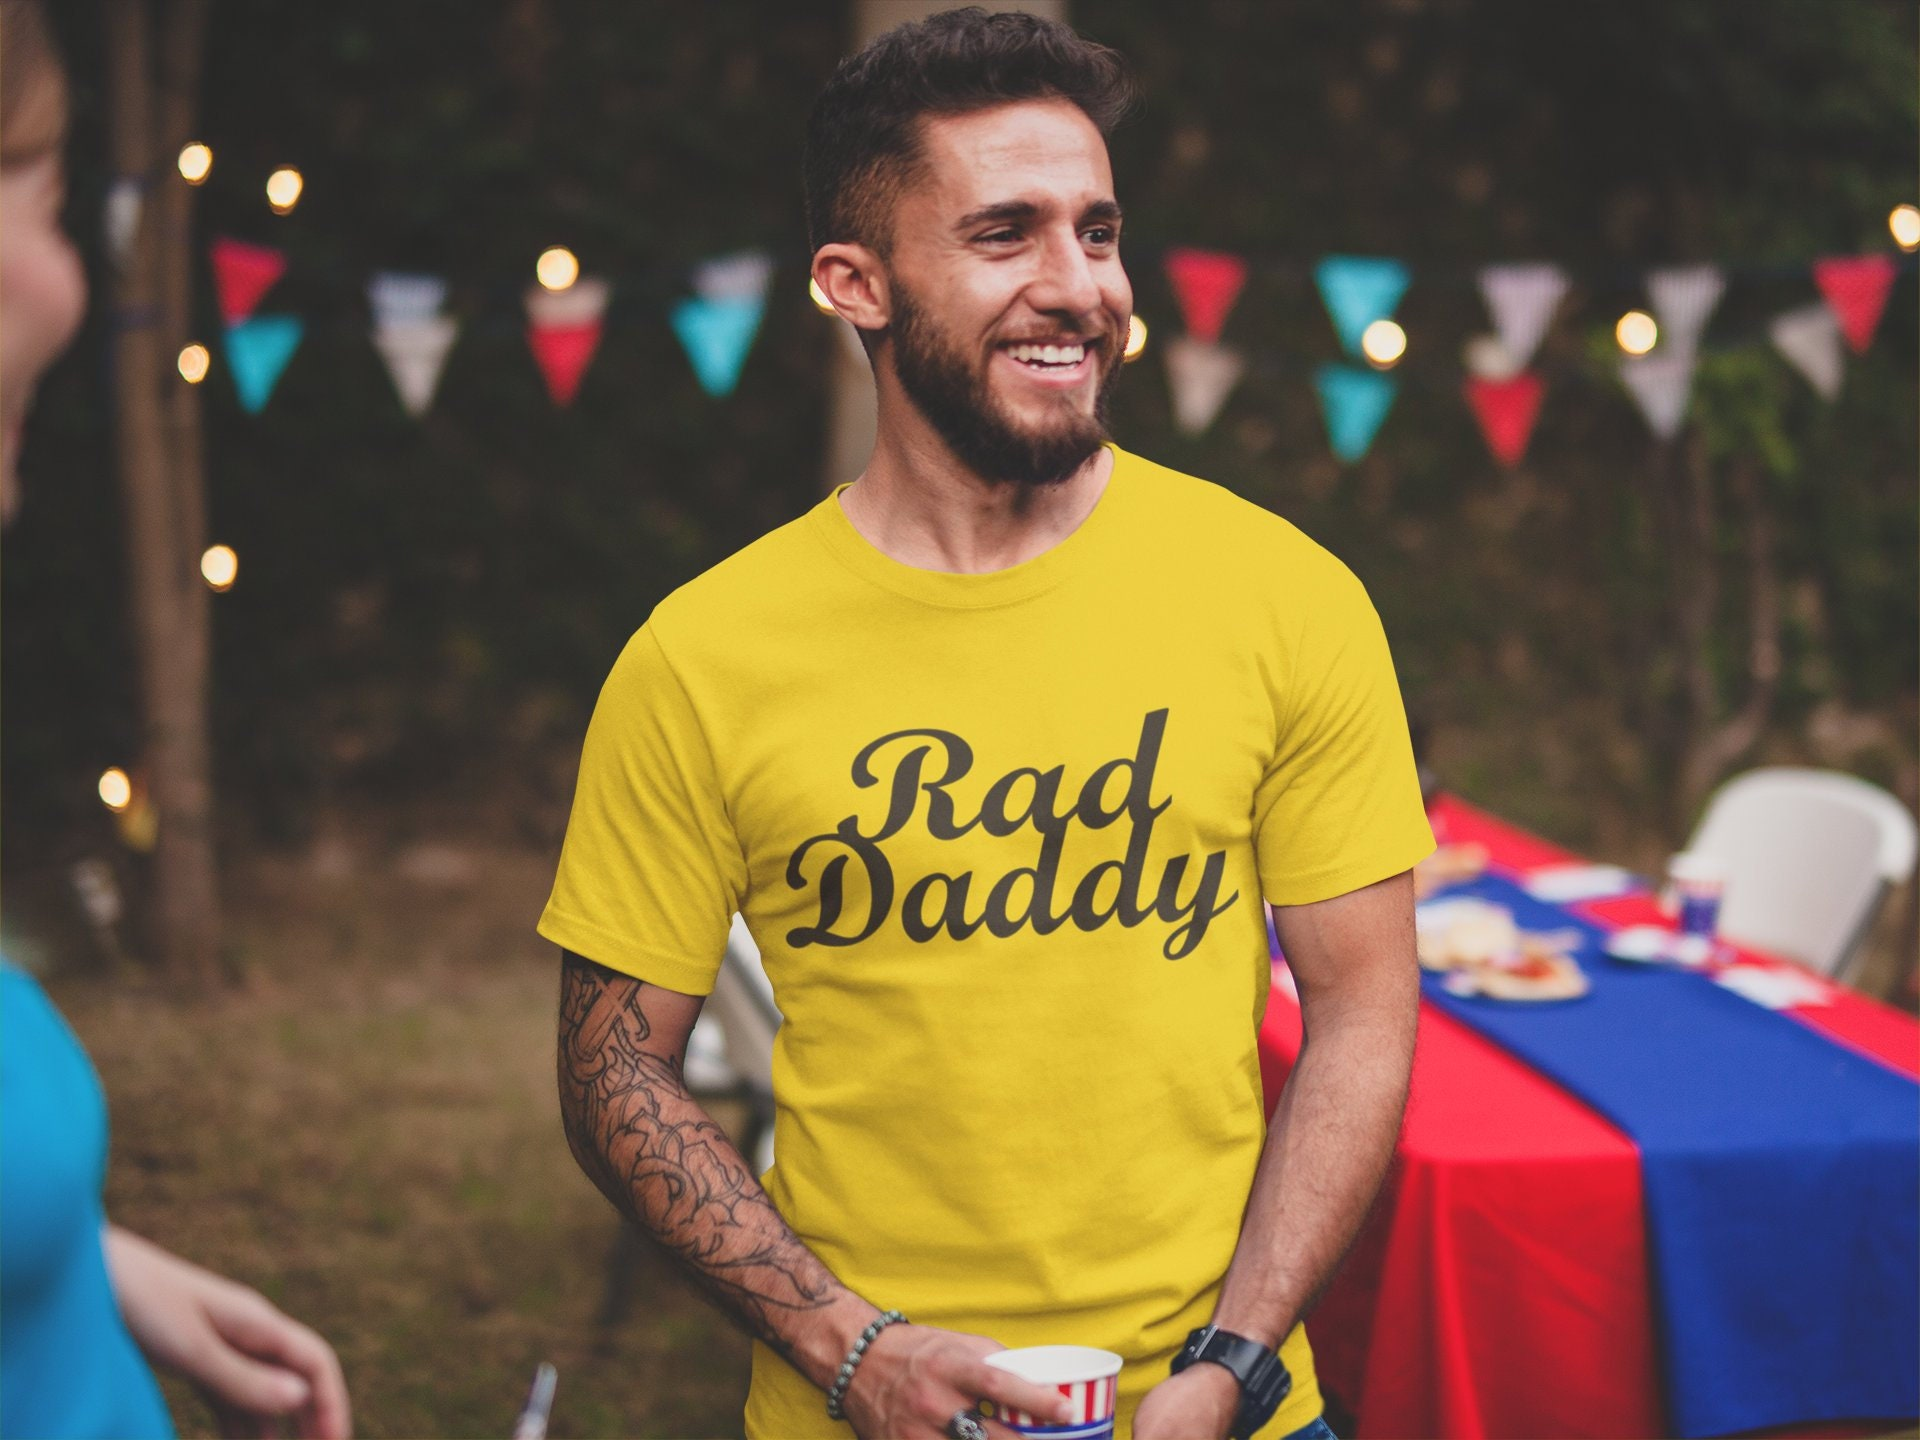 Rad Daddy Shirt For Family Clothing Christmas Gift T Shirt For